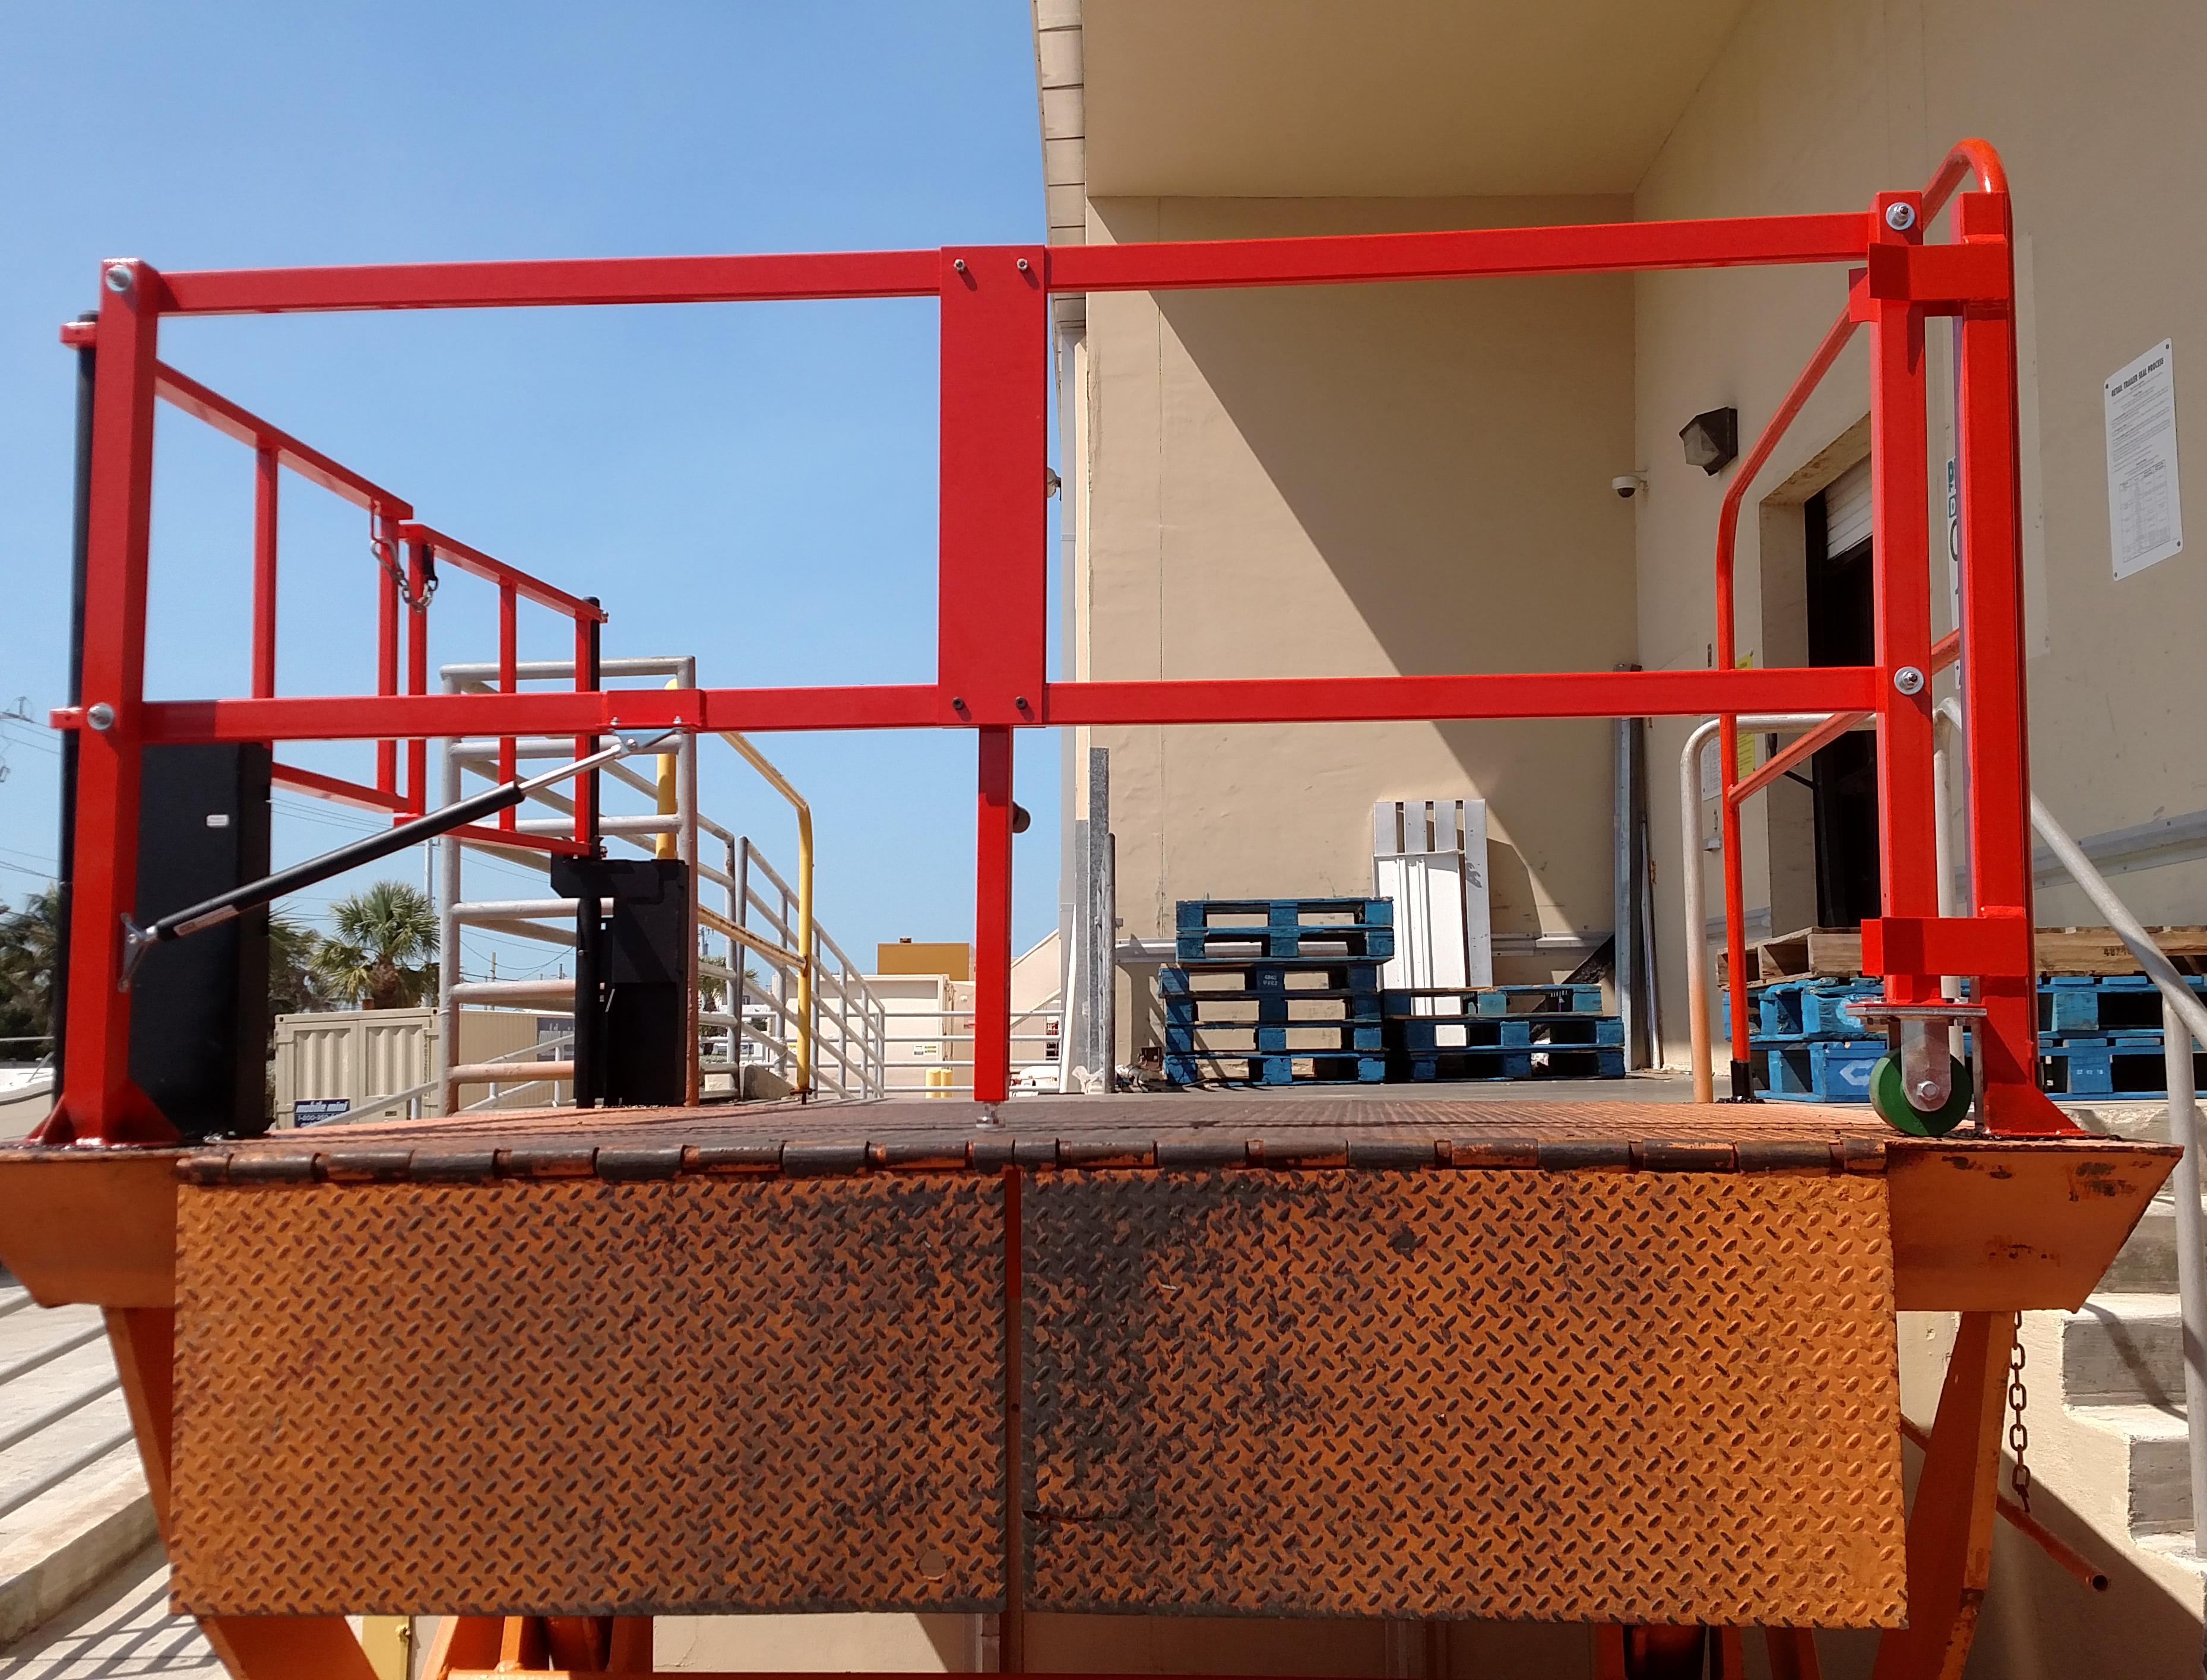 Grocer Protects Workers on Loading Dock Lifts